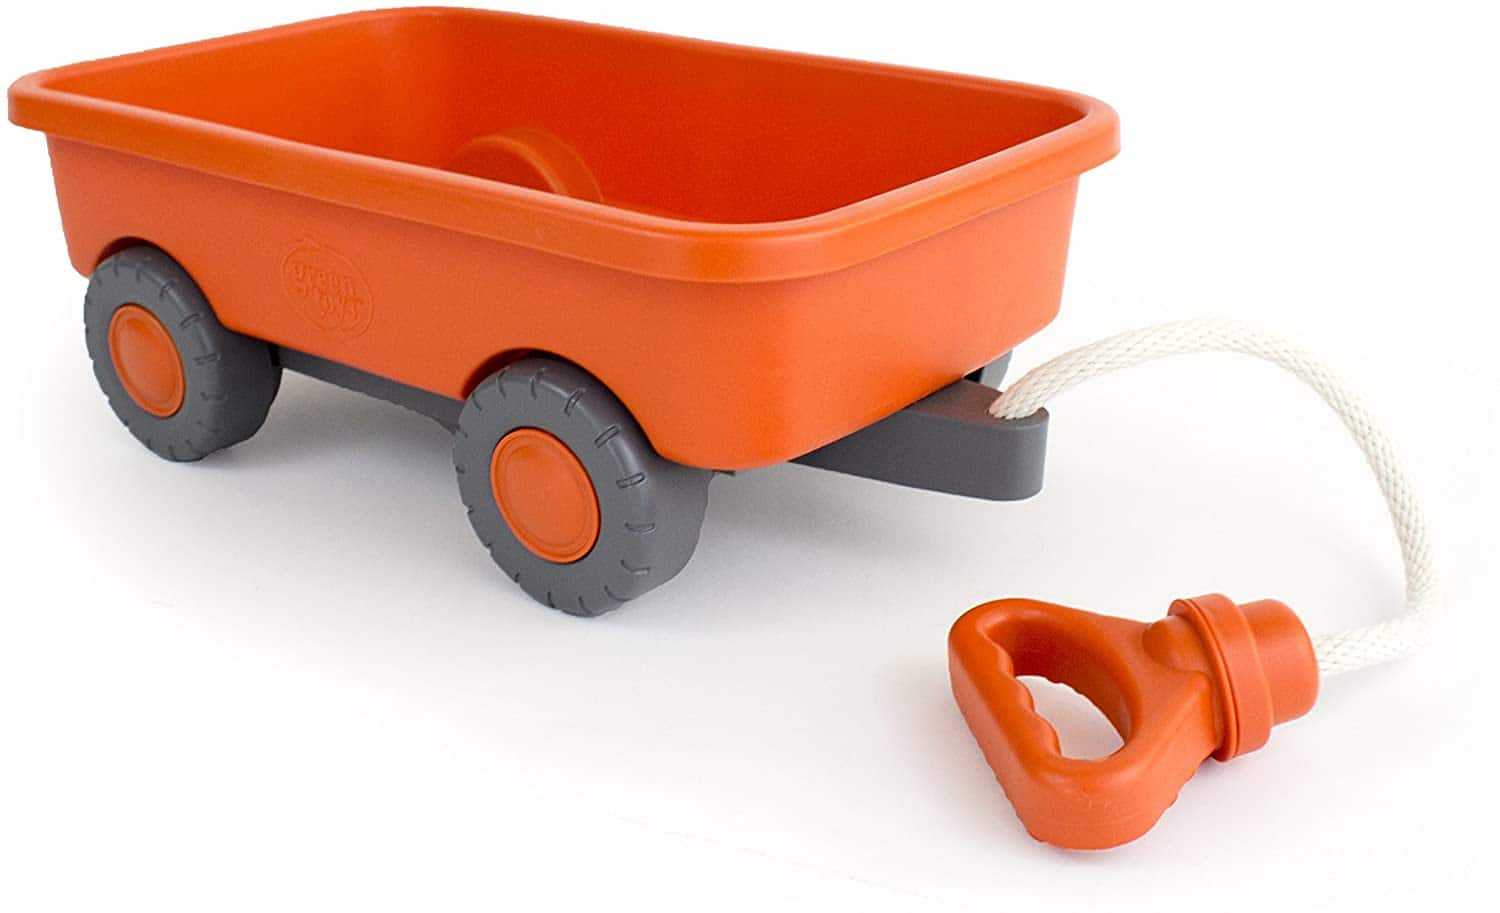 Green Toys Kid's Outdoor Wagon (Orange) $13 + Free Shipping w/ Prime or on $25+